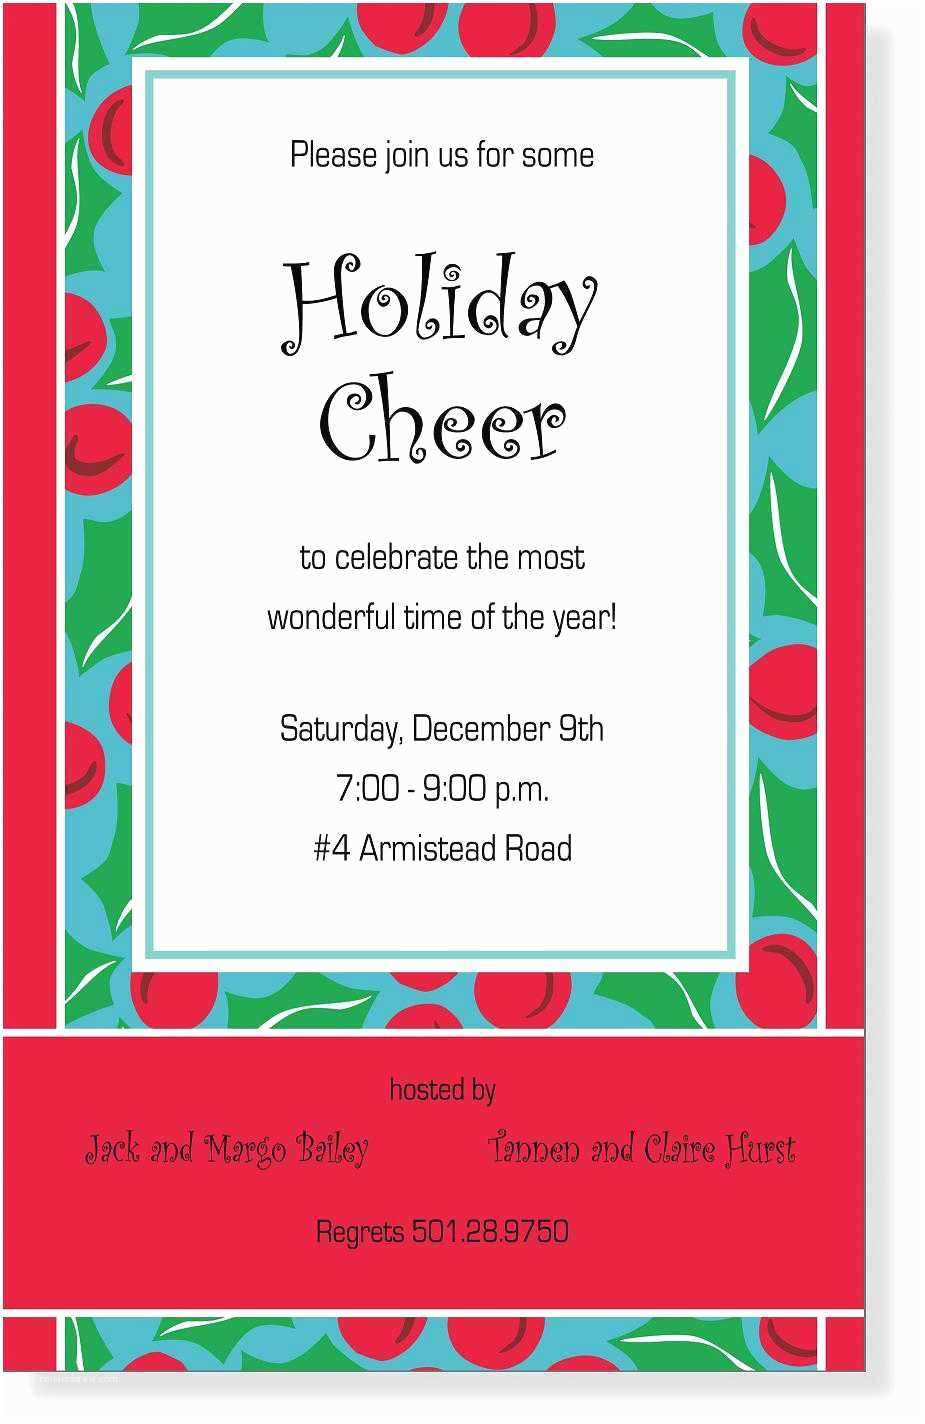 Office Christmas Party Invitation Wording Wording for Holiday Open House